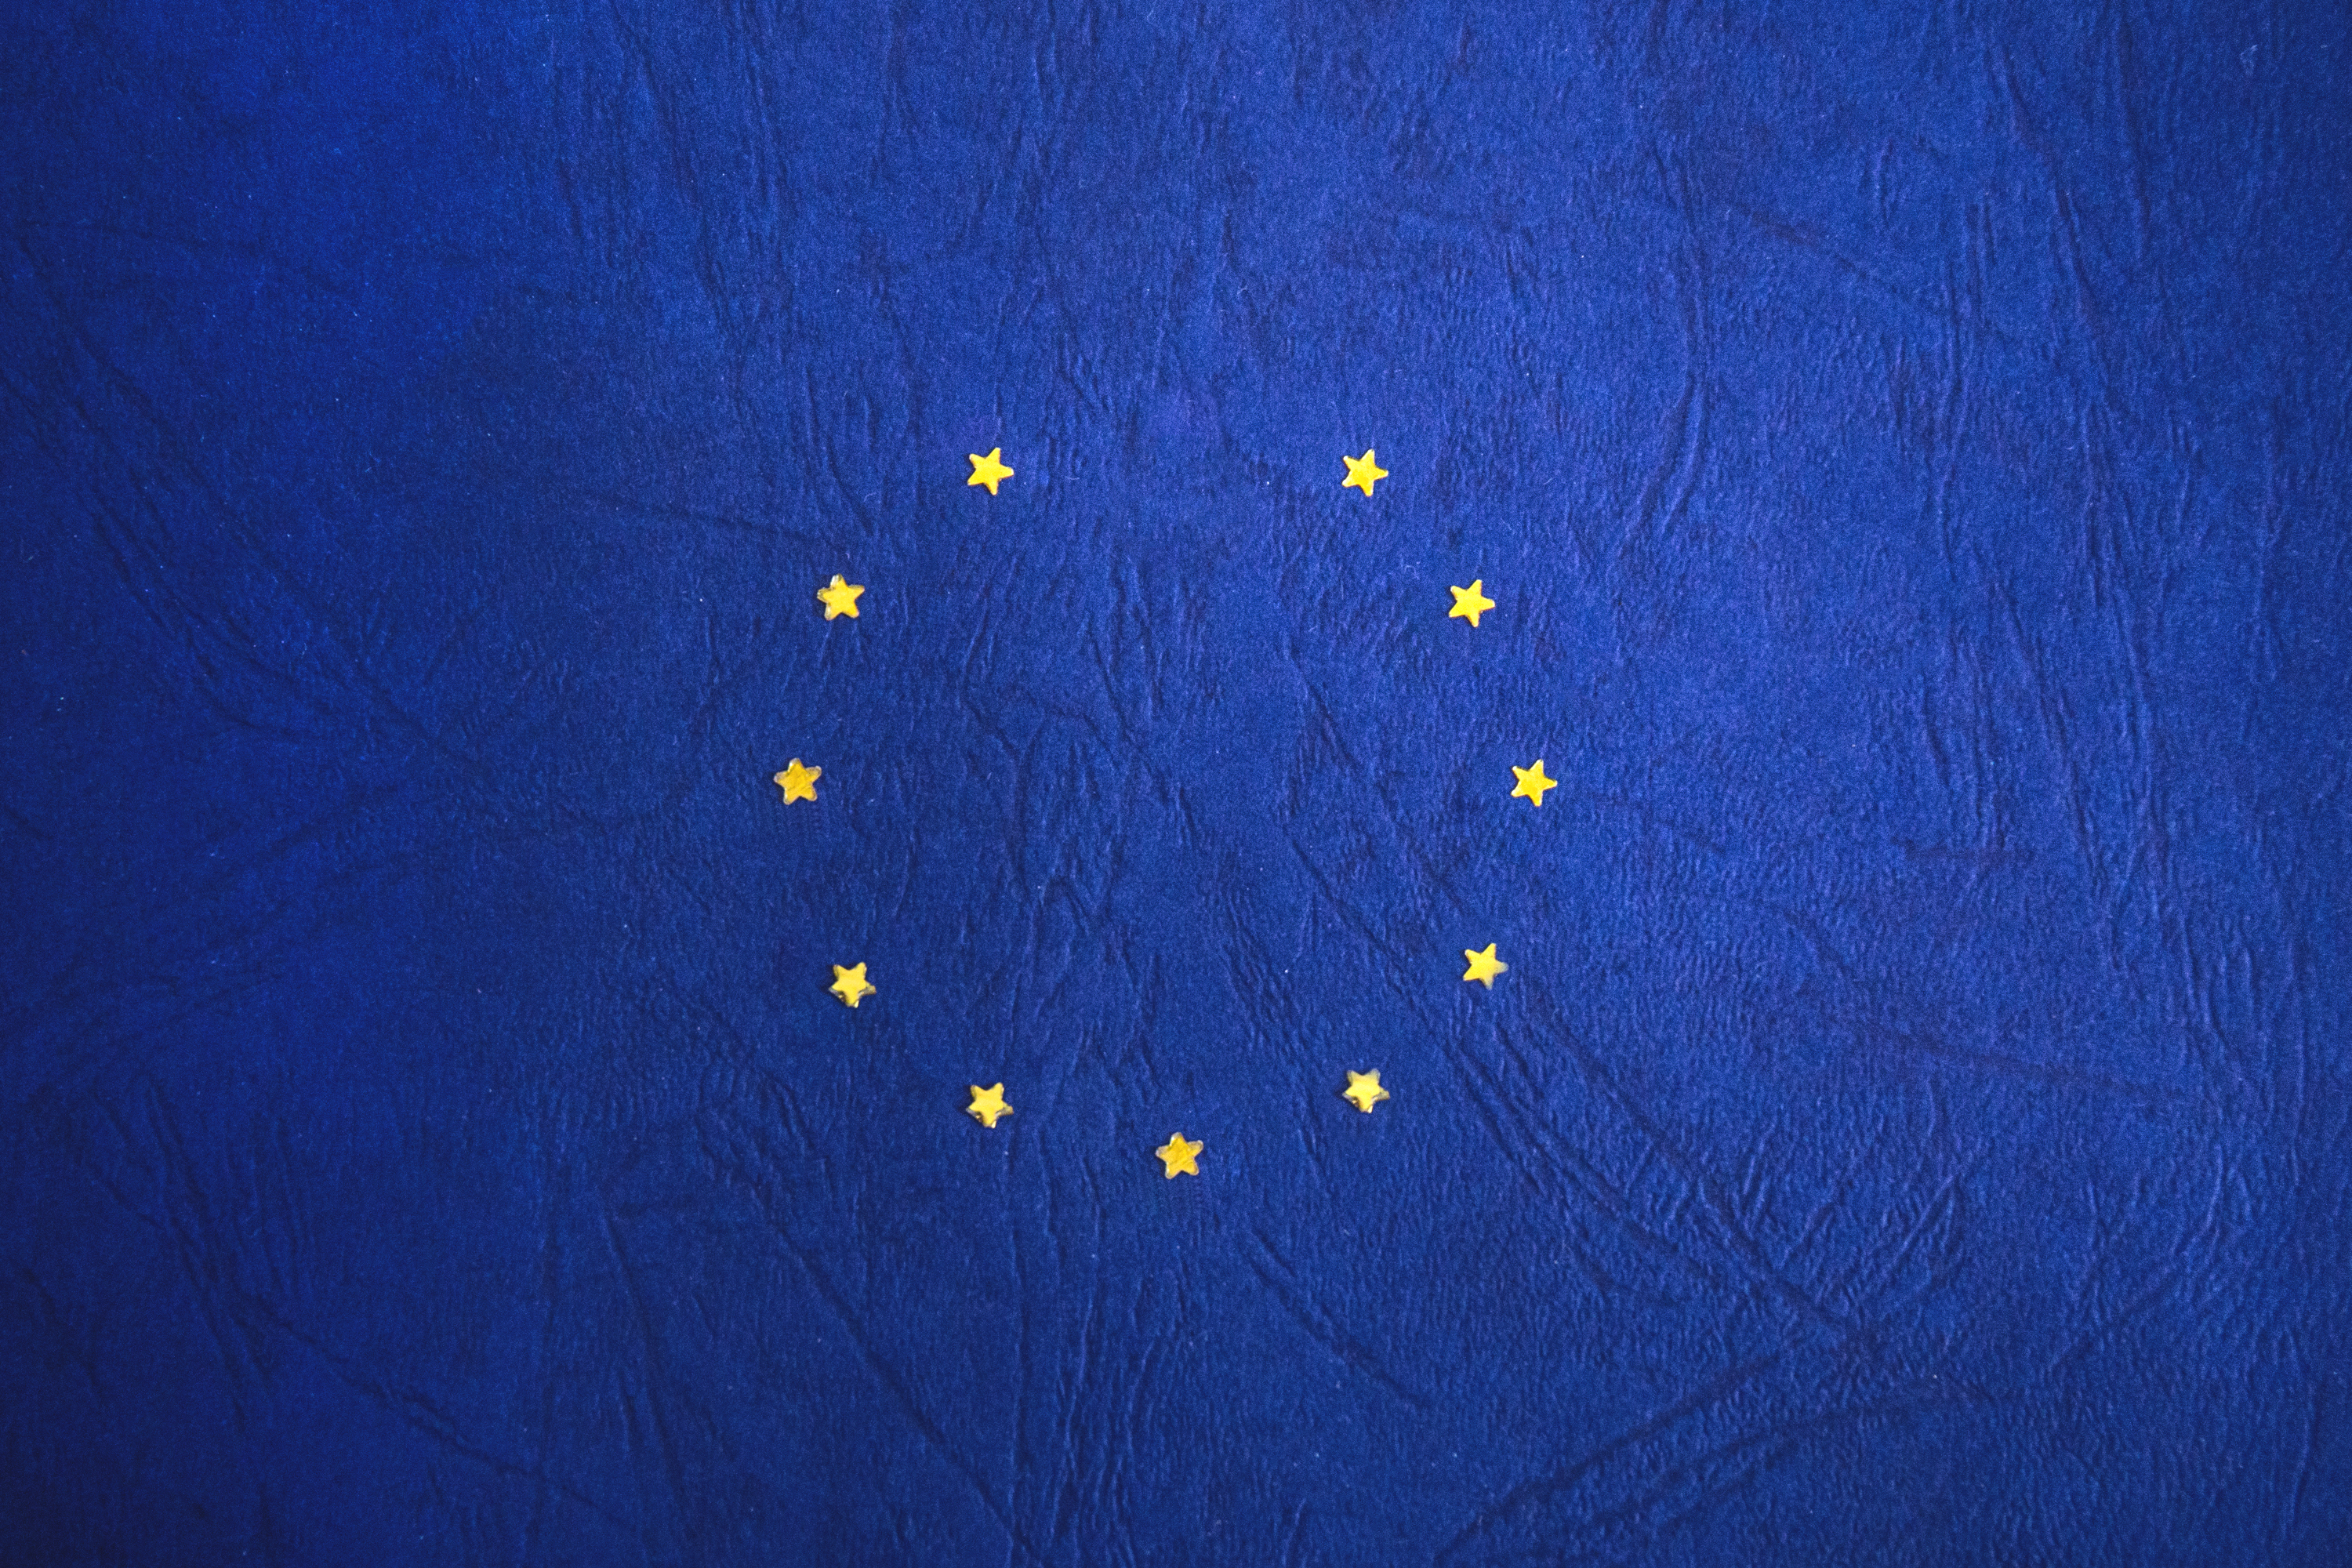 Brexit. Boring, tedious Brexit. It's time to look forwards: Bright Blue's new Europe Forum